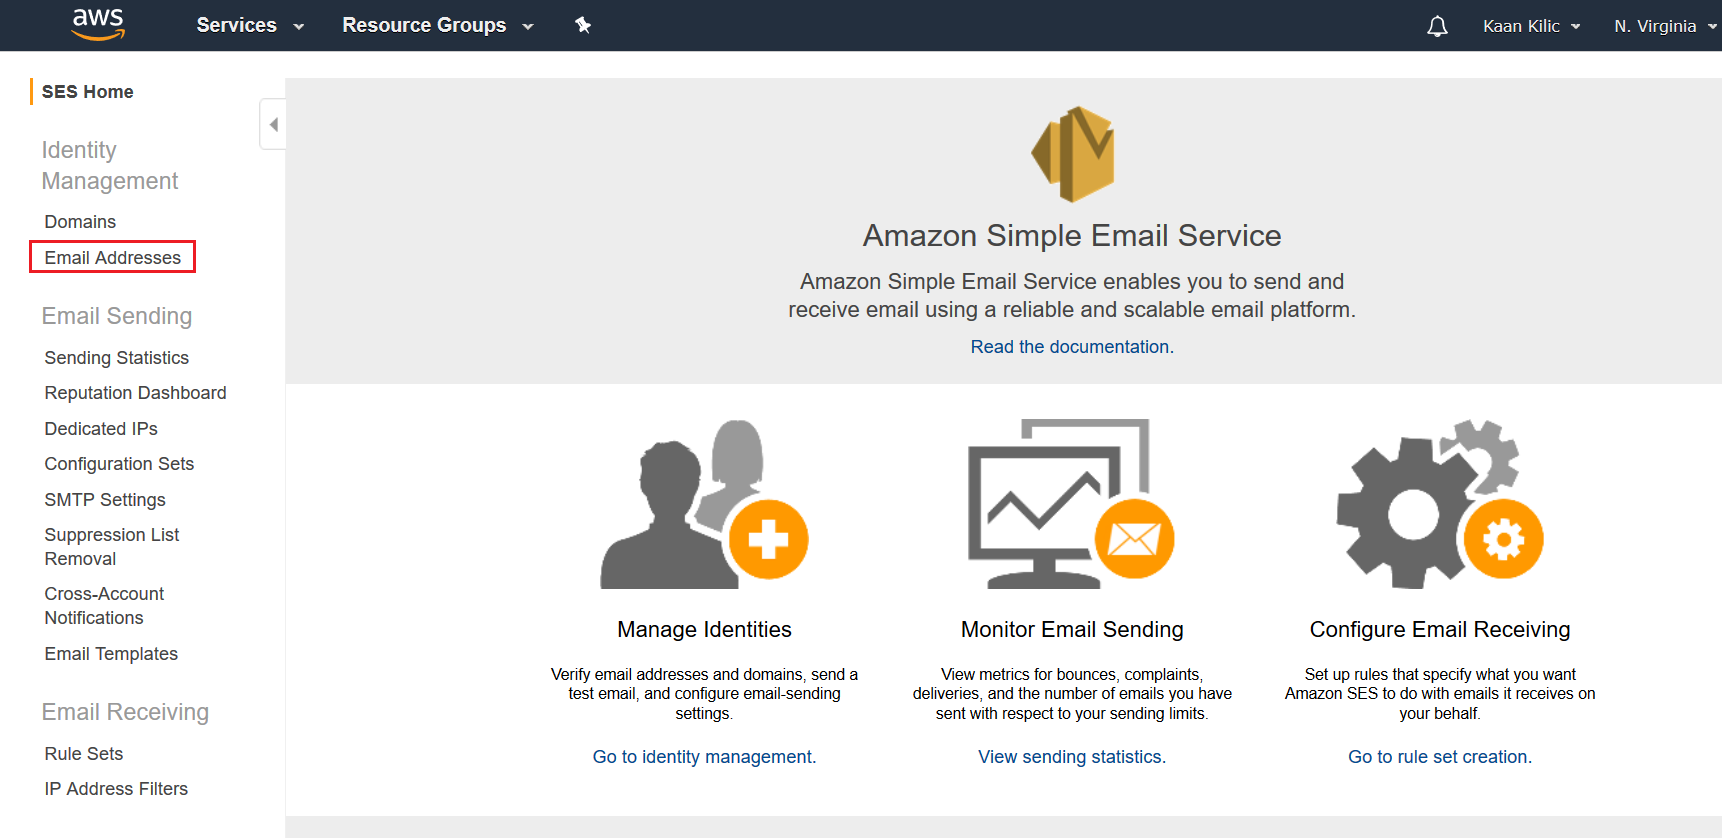 AWS SES Landing Page